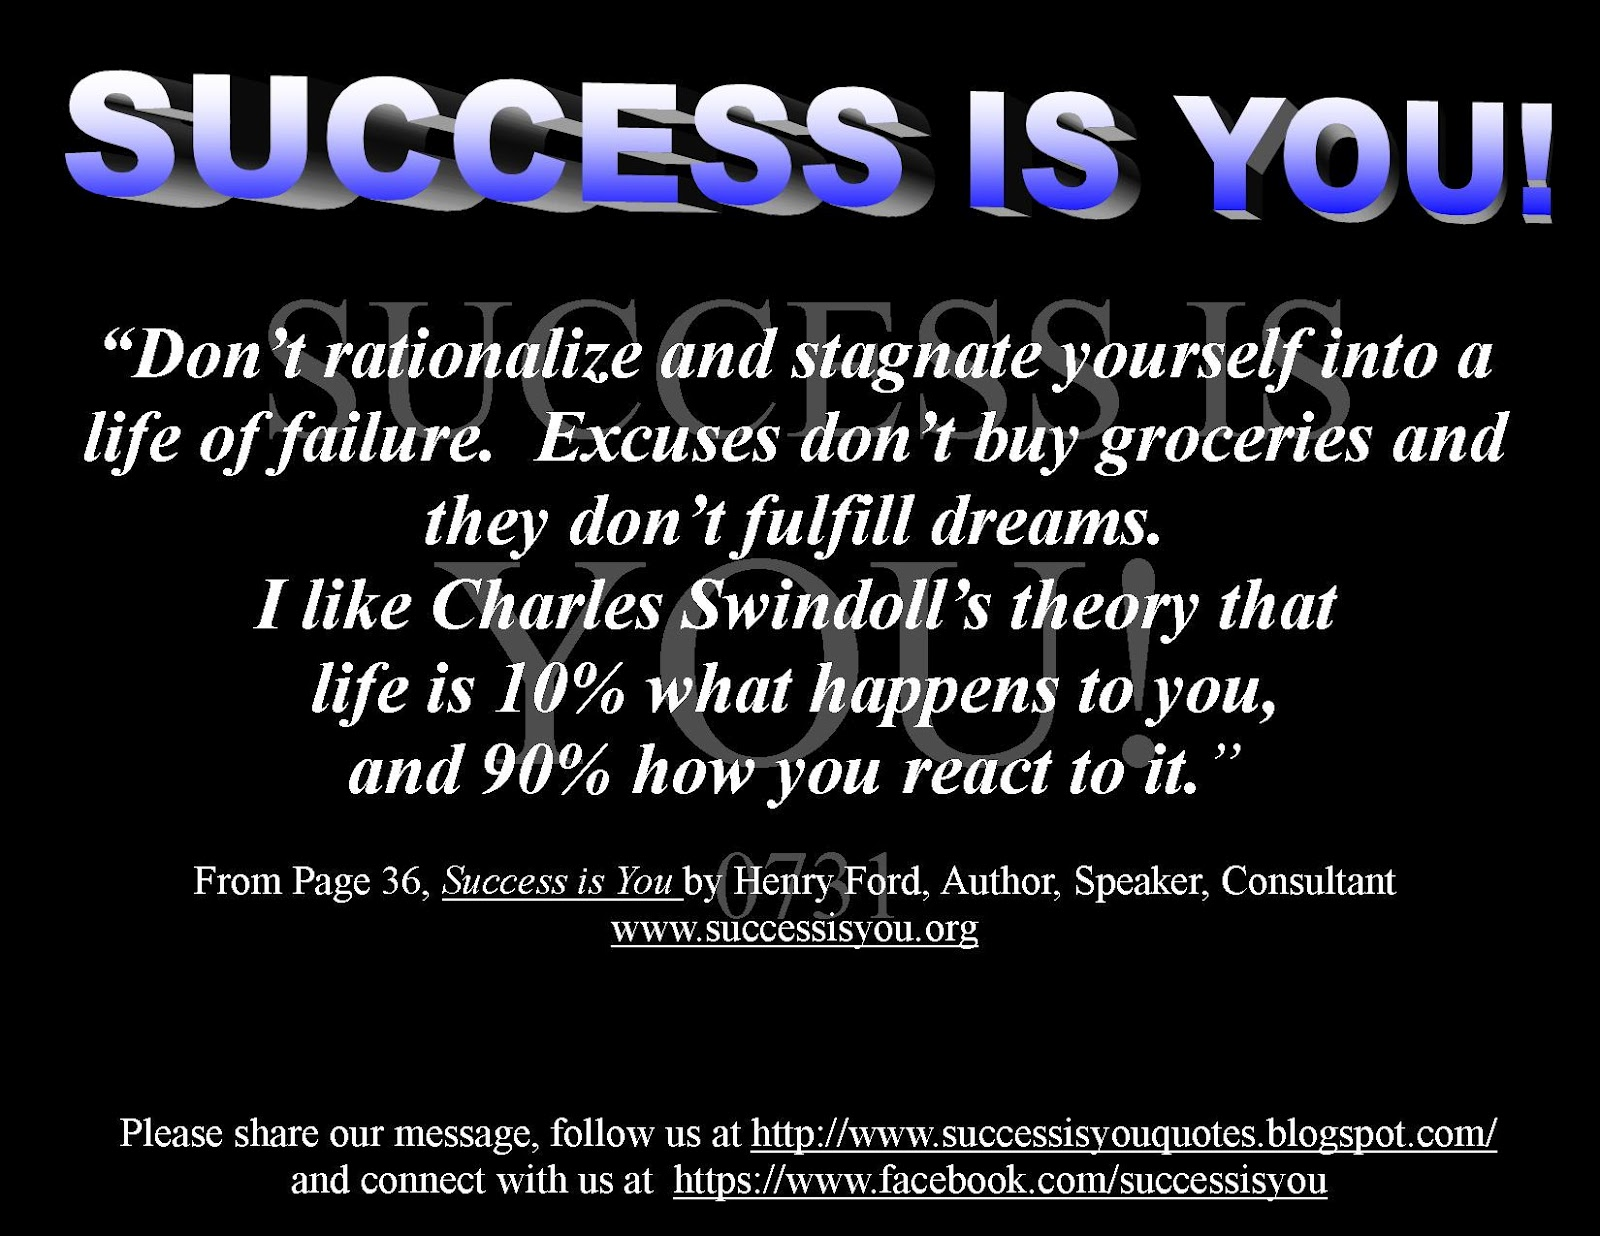 Success Quotes Sayings Pictures And Images: Success Quotes. QuotesGram